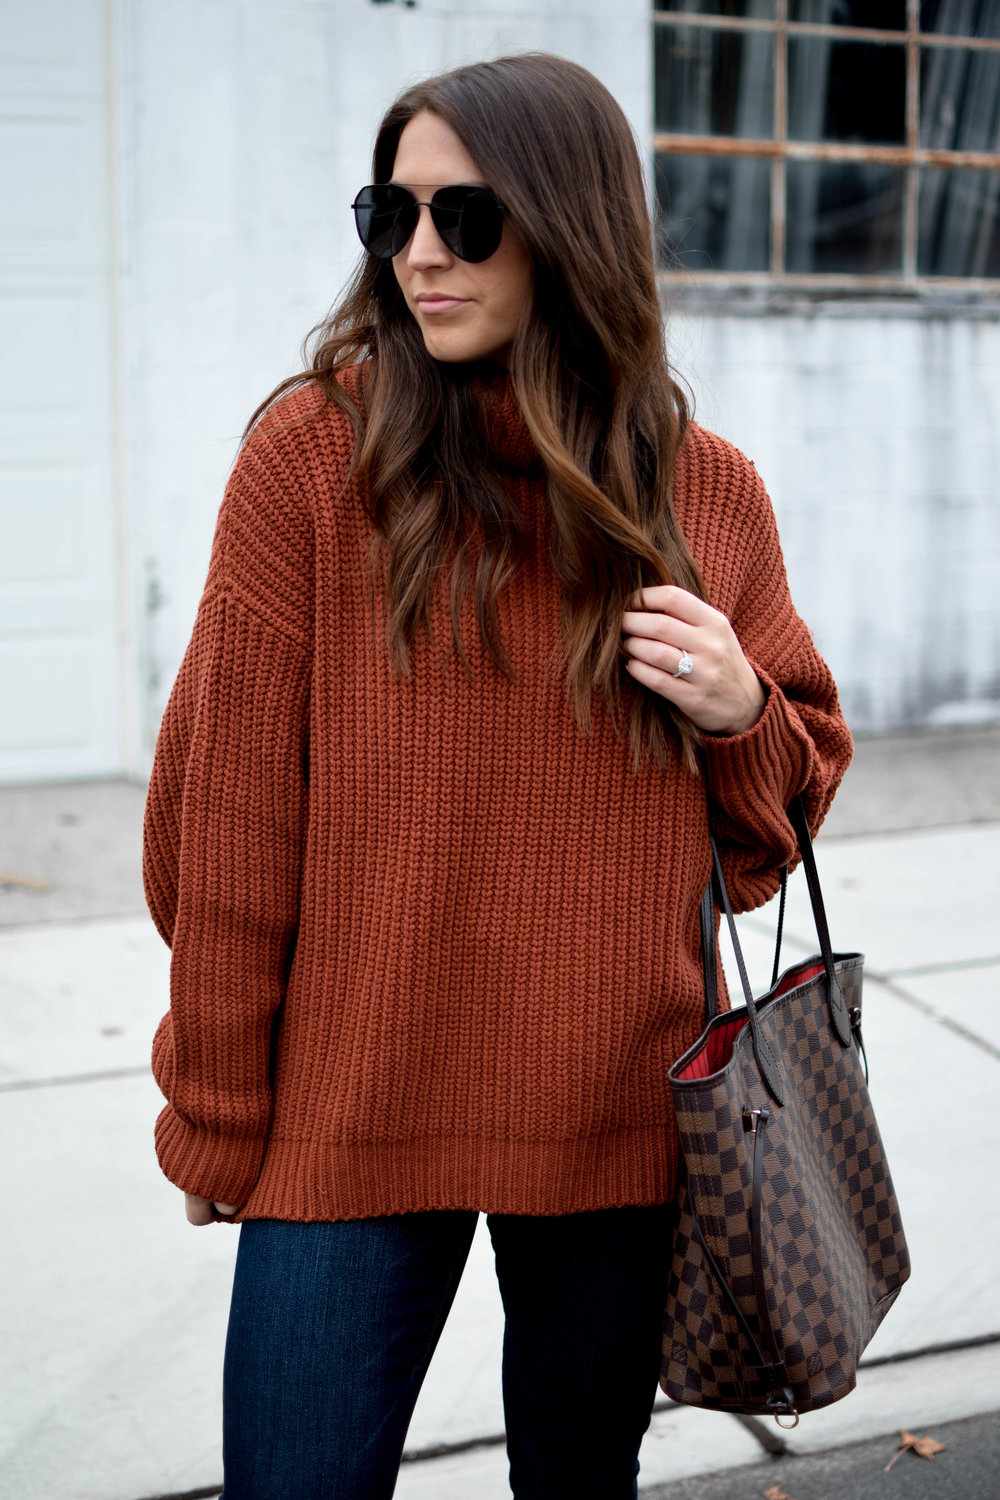 My Outfits On Sale | Pine Barren Beauty | free people sweater, chunky sweater, cozy sweater, fall outfit idea, winter outfit idea, black Friday sales